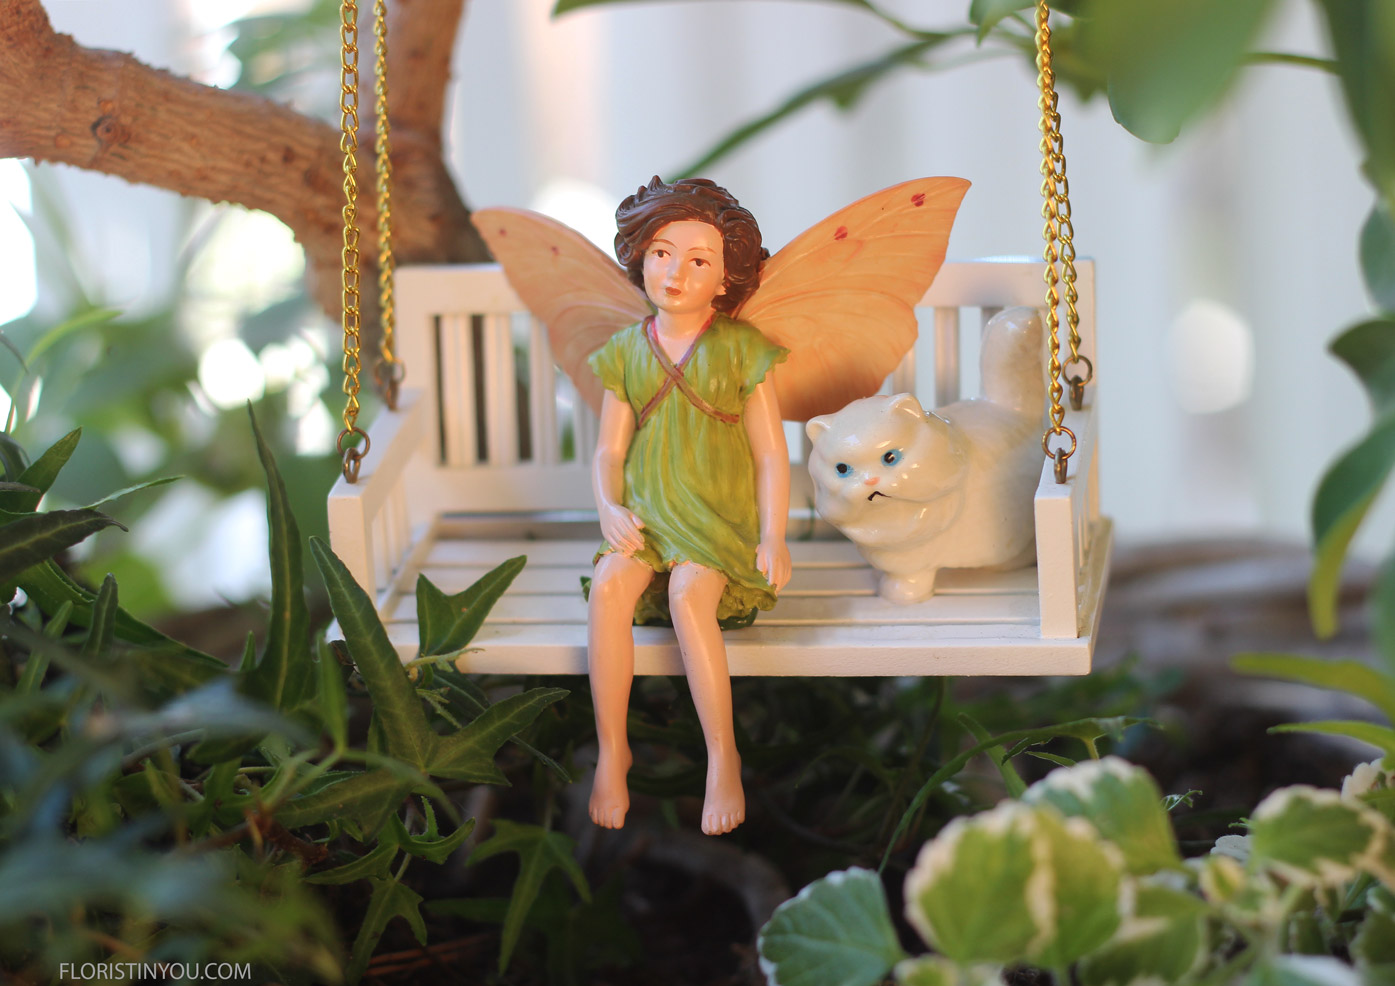 The swing & fairie pets are on the shop-fairie-garden link above.